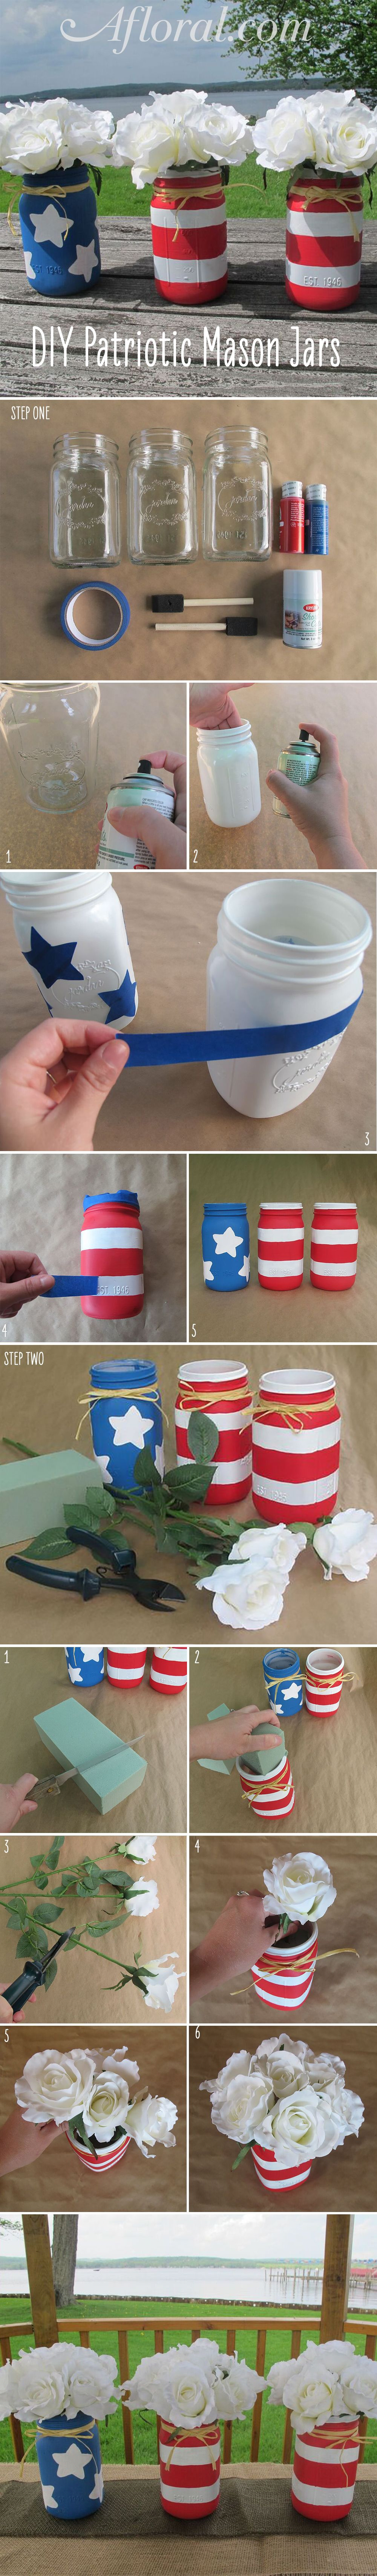 Diy patriotic mason jars you can diy these adorable flag mason jars